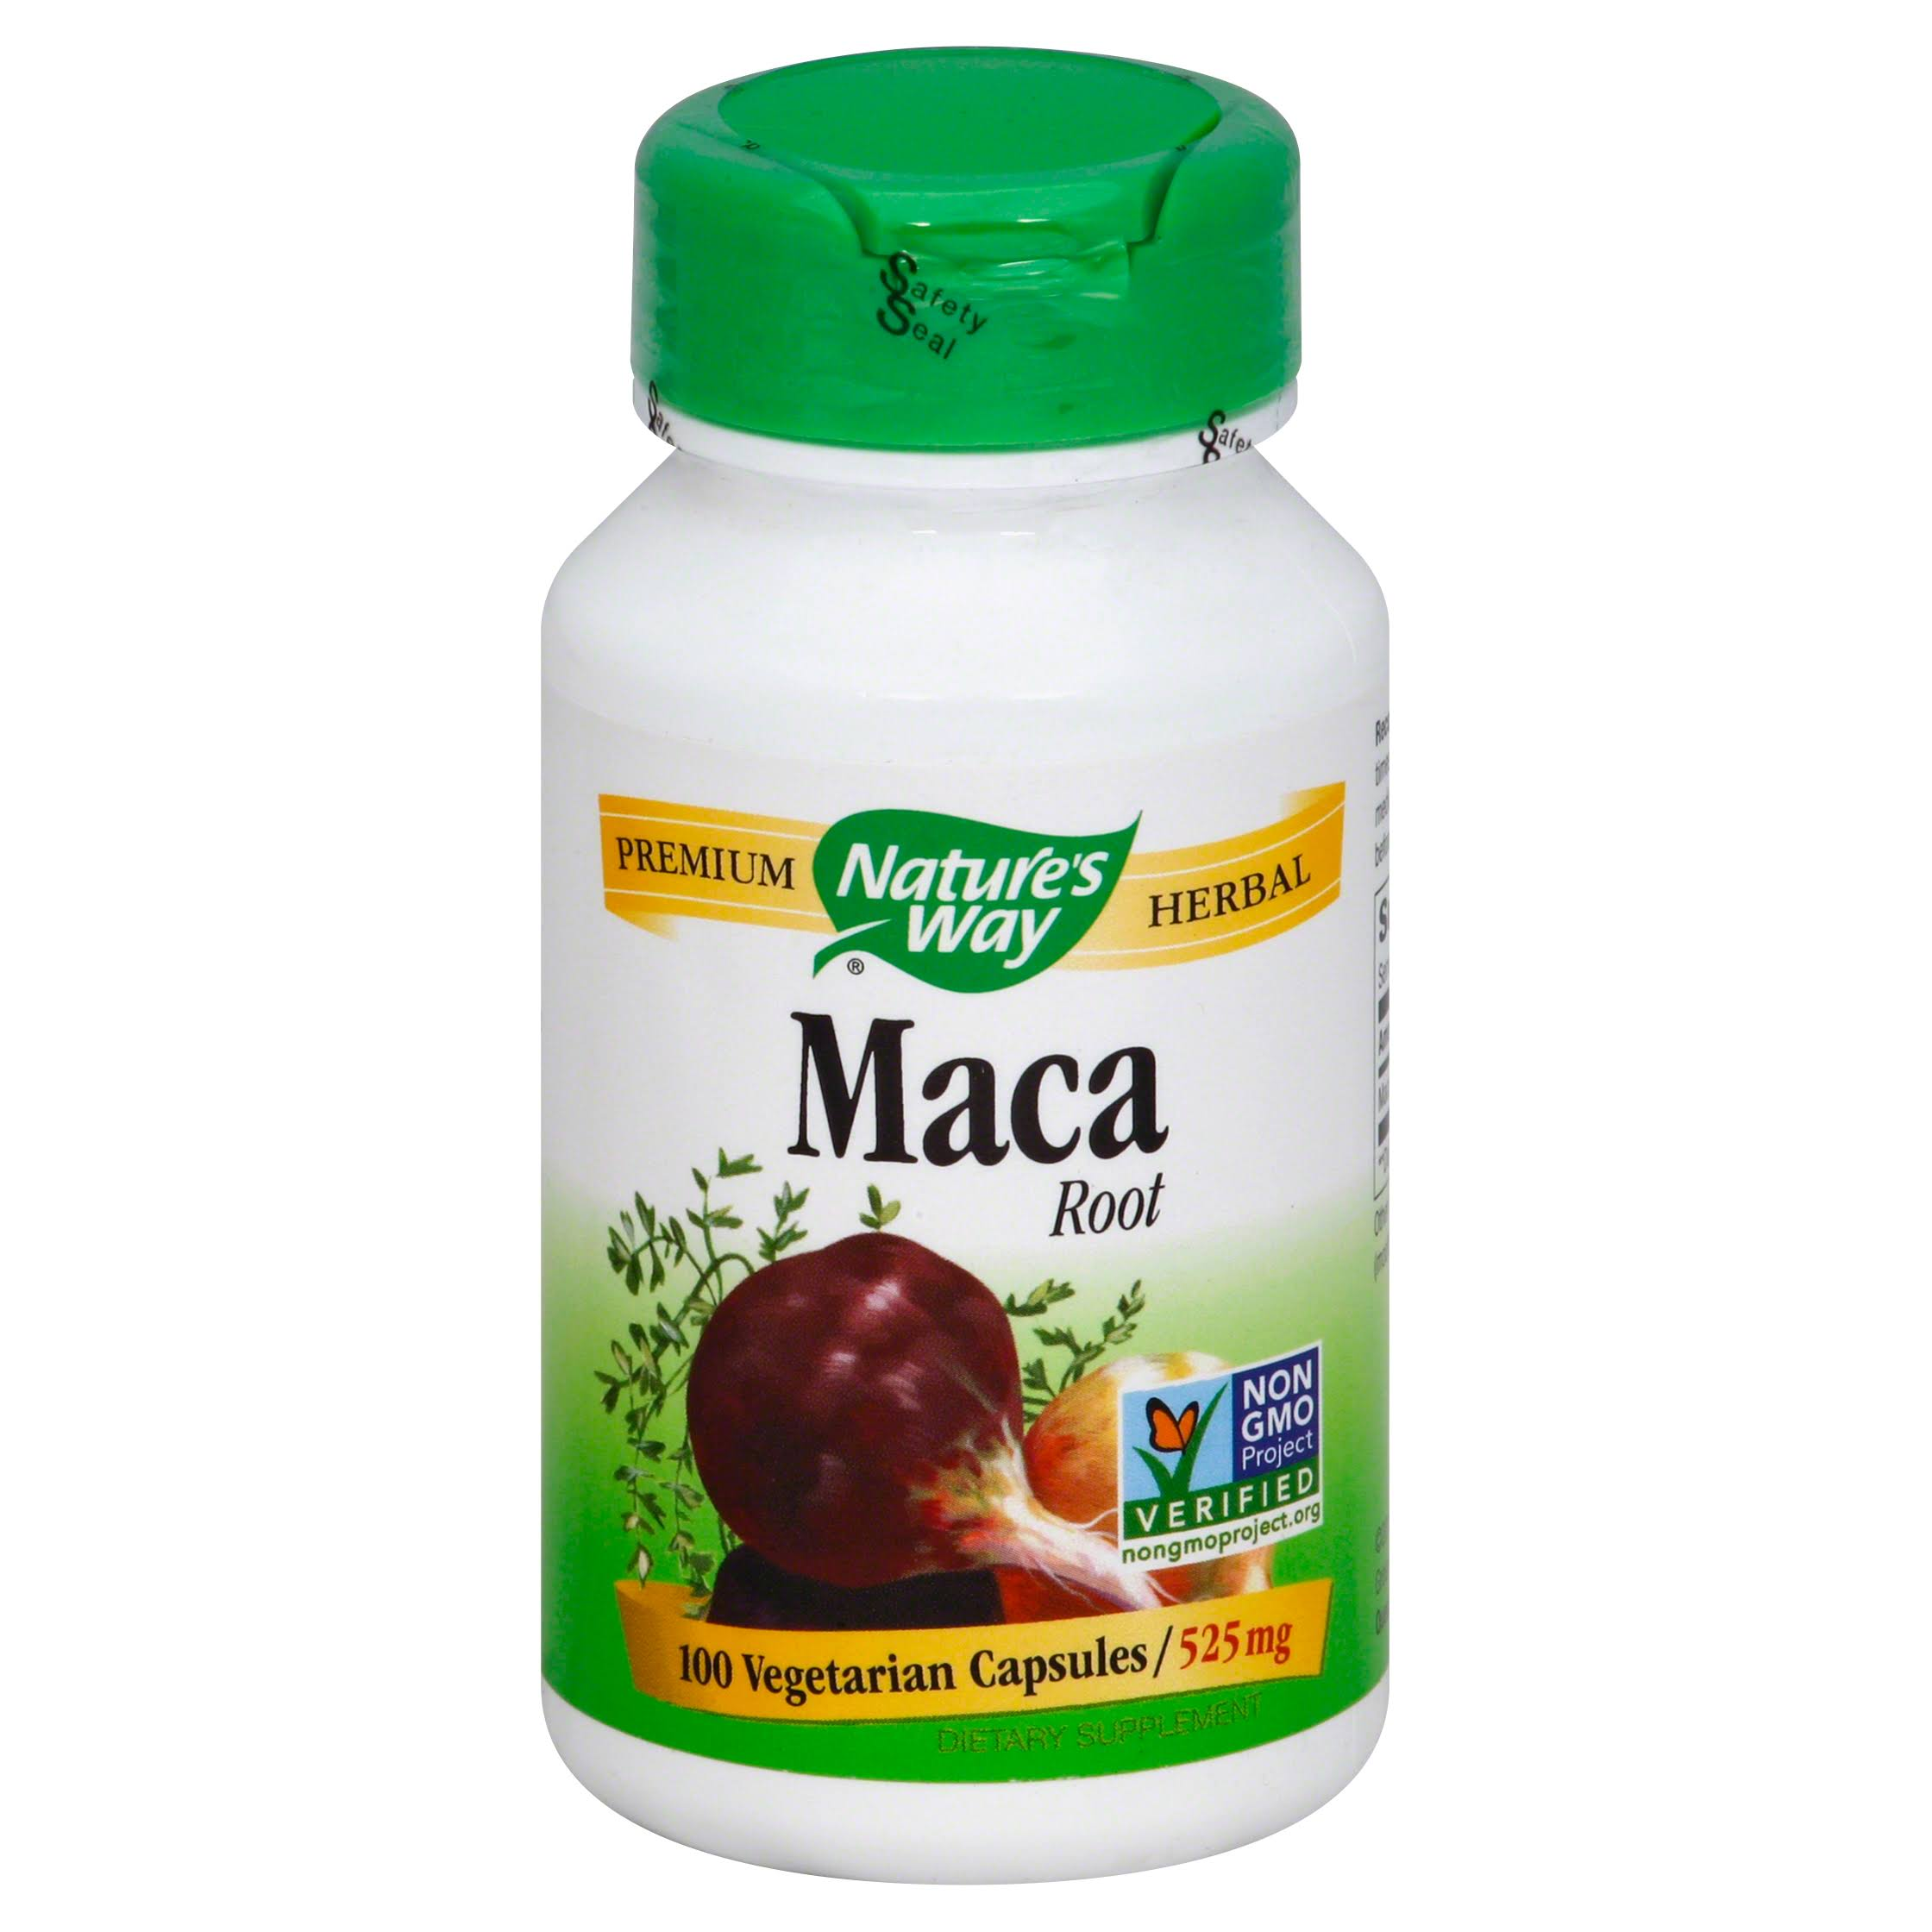 Nature's Way Maca Root - 525mg, 100 Capsules